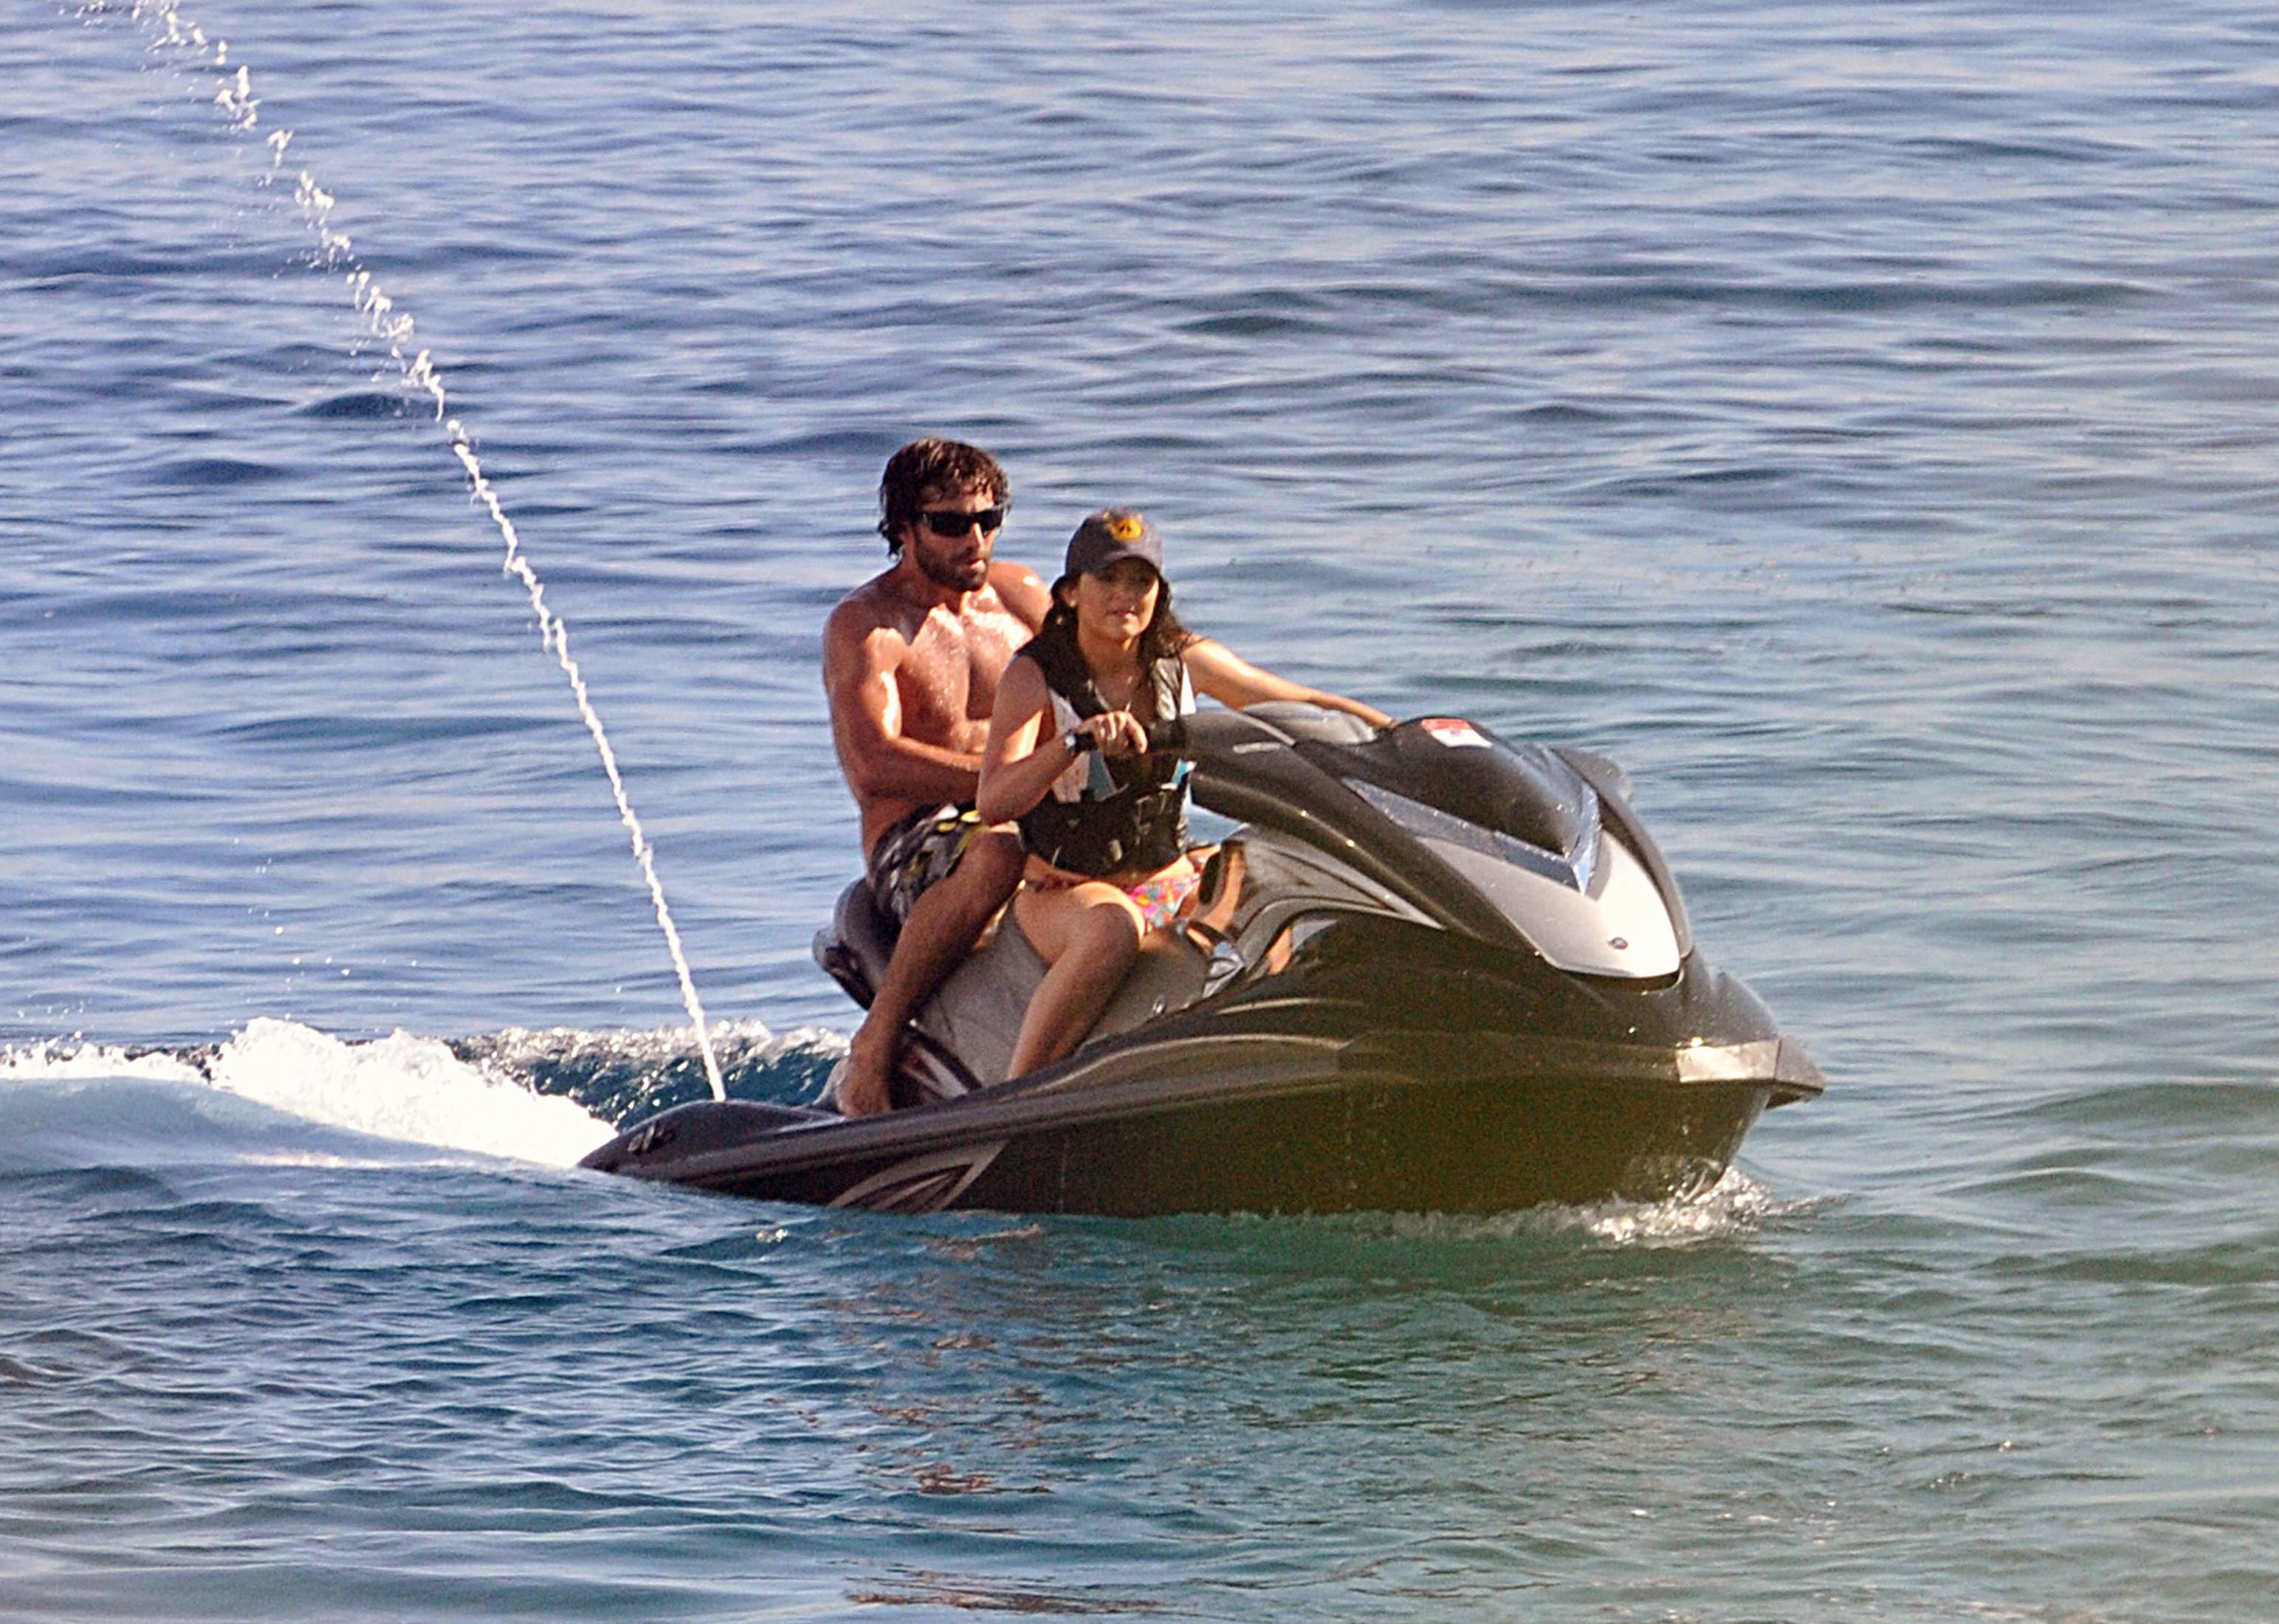 Kylie Jenner and Brody Jenner ride jet skis in Mykonos, Greece, in April 2013.